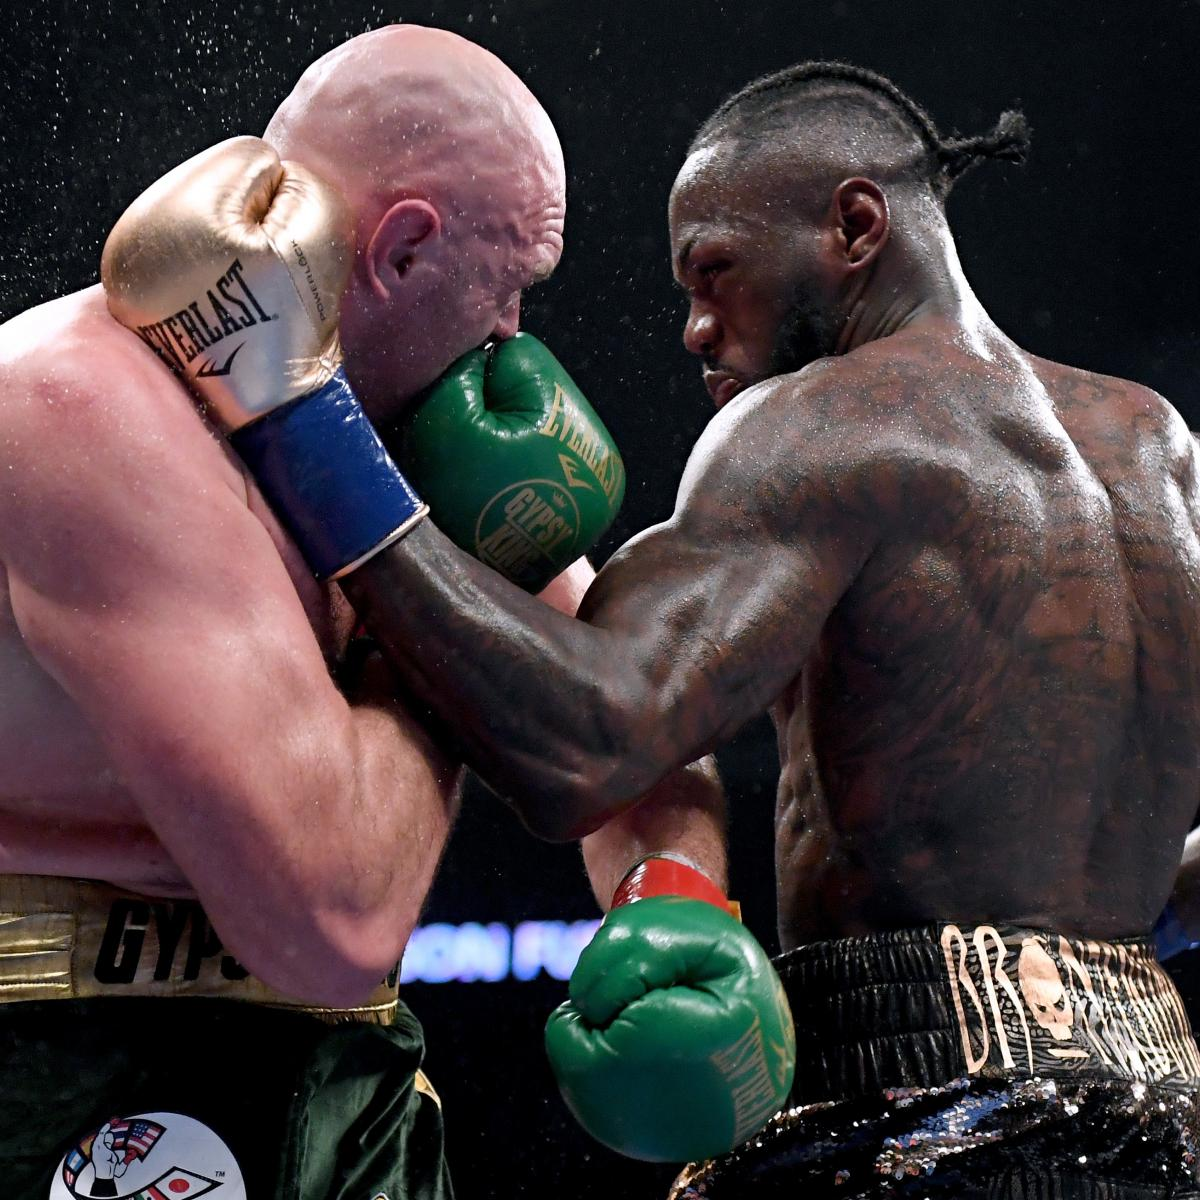 Deontay Wilder Vs. Tyson Fury II Postponed; Gypsy King To